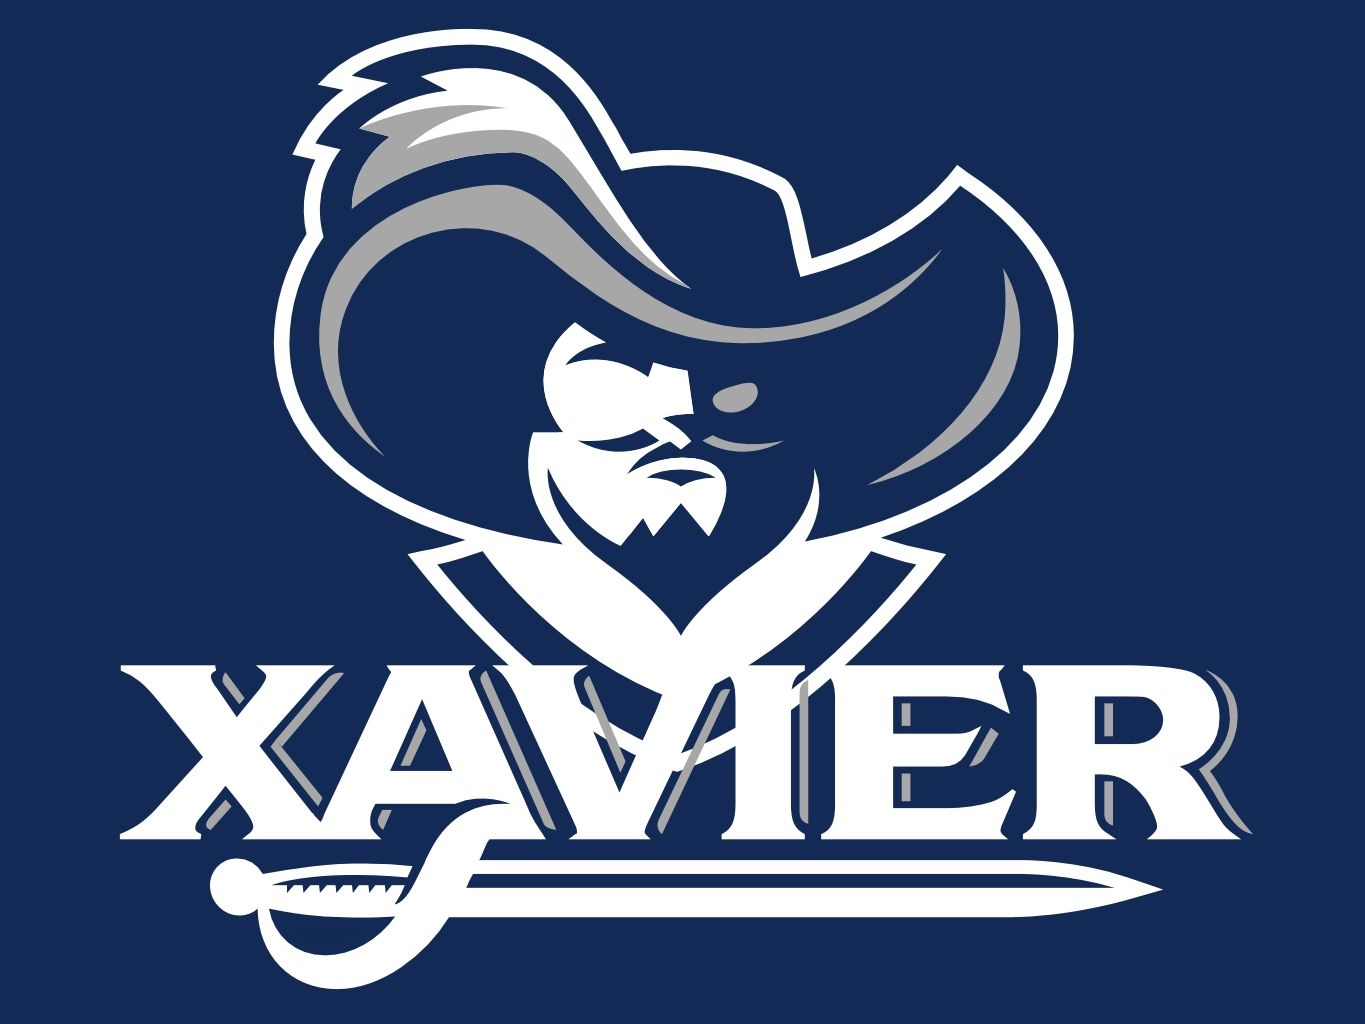 Xavier color printing - Xavier School Is A Private University Recognized In 1831 Description From Topeducationtips Com